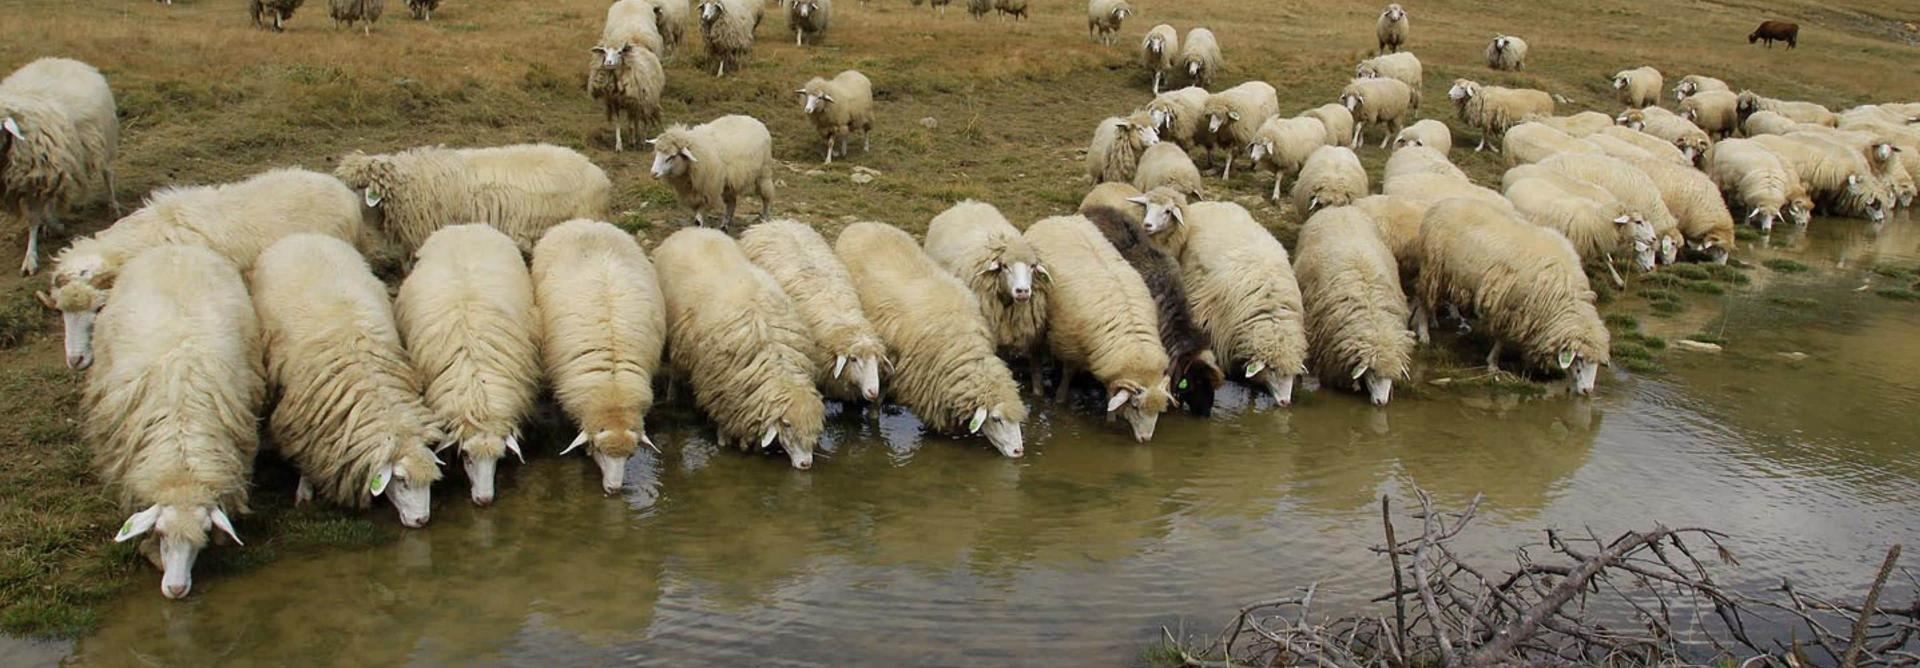 Trek Albania sheep